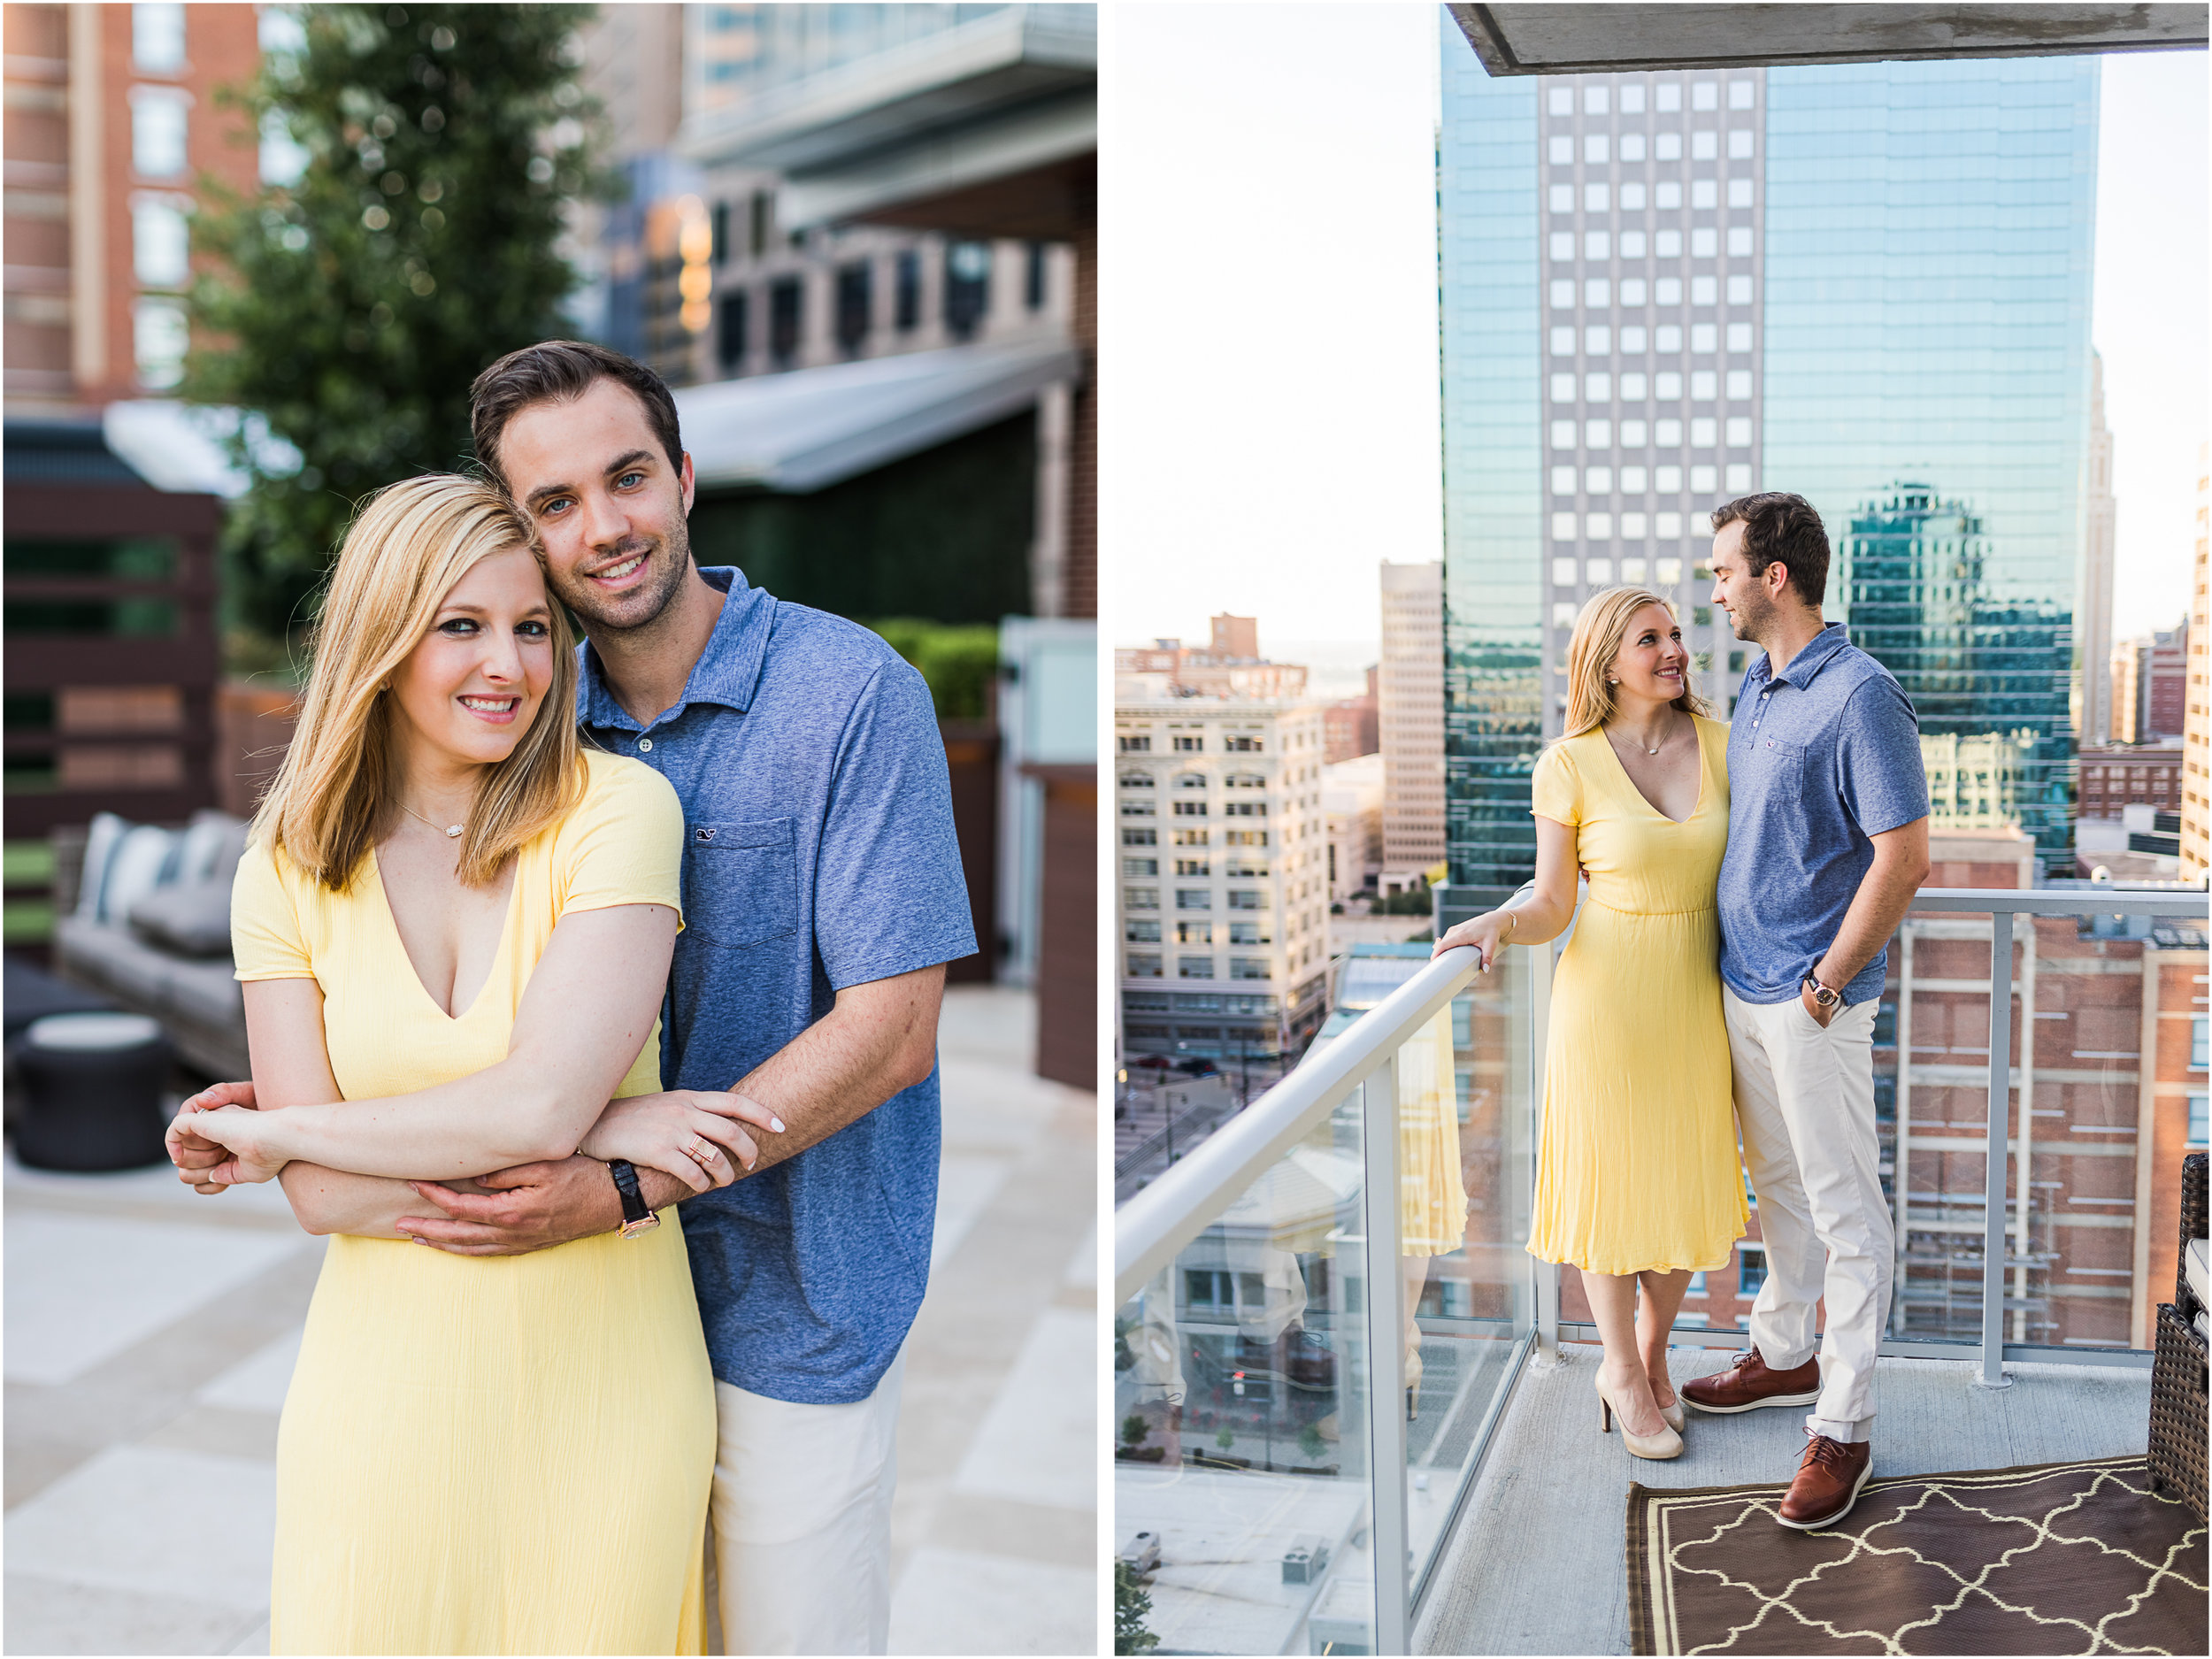 Downtown kansas city engagement photo 2.jpg